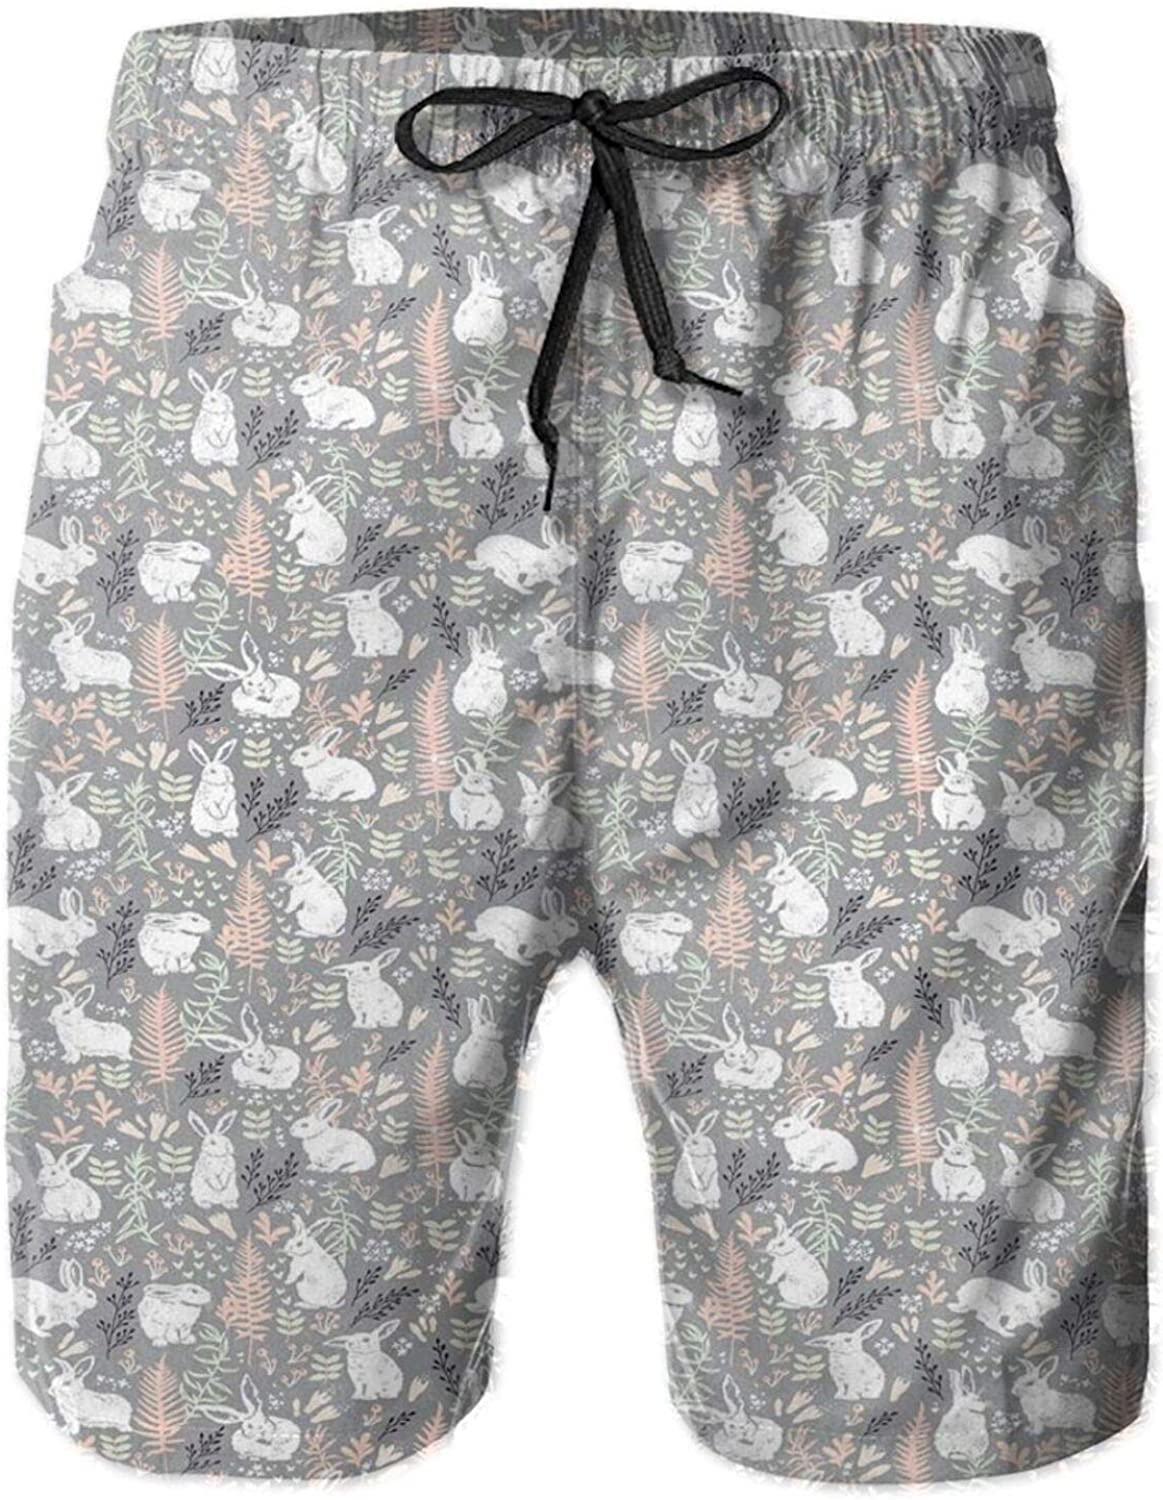 Nature Inspired Pattern Drawn by Hand with White Hares Hearts and Floral Elements Mens Swim Shorts Casual Workout Short Pants Drawstring Beach Shorts,XL